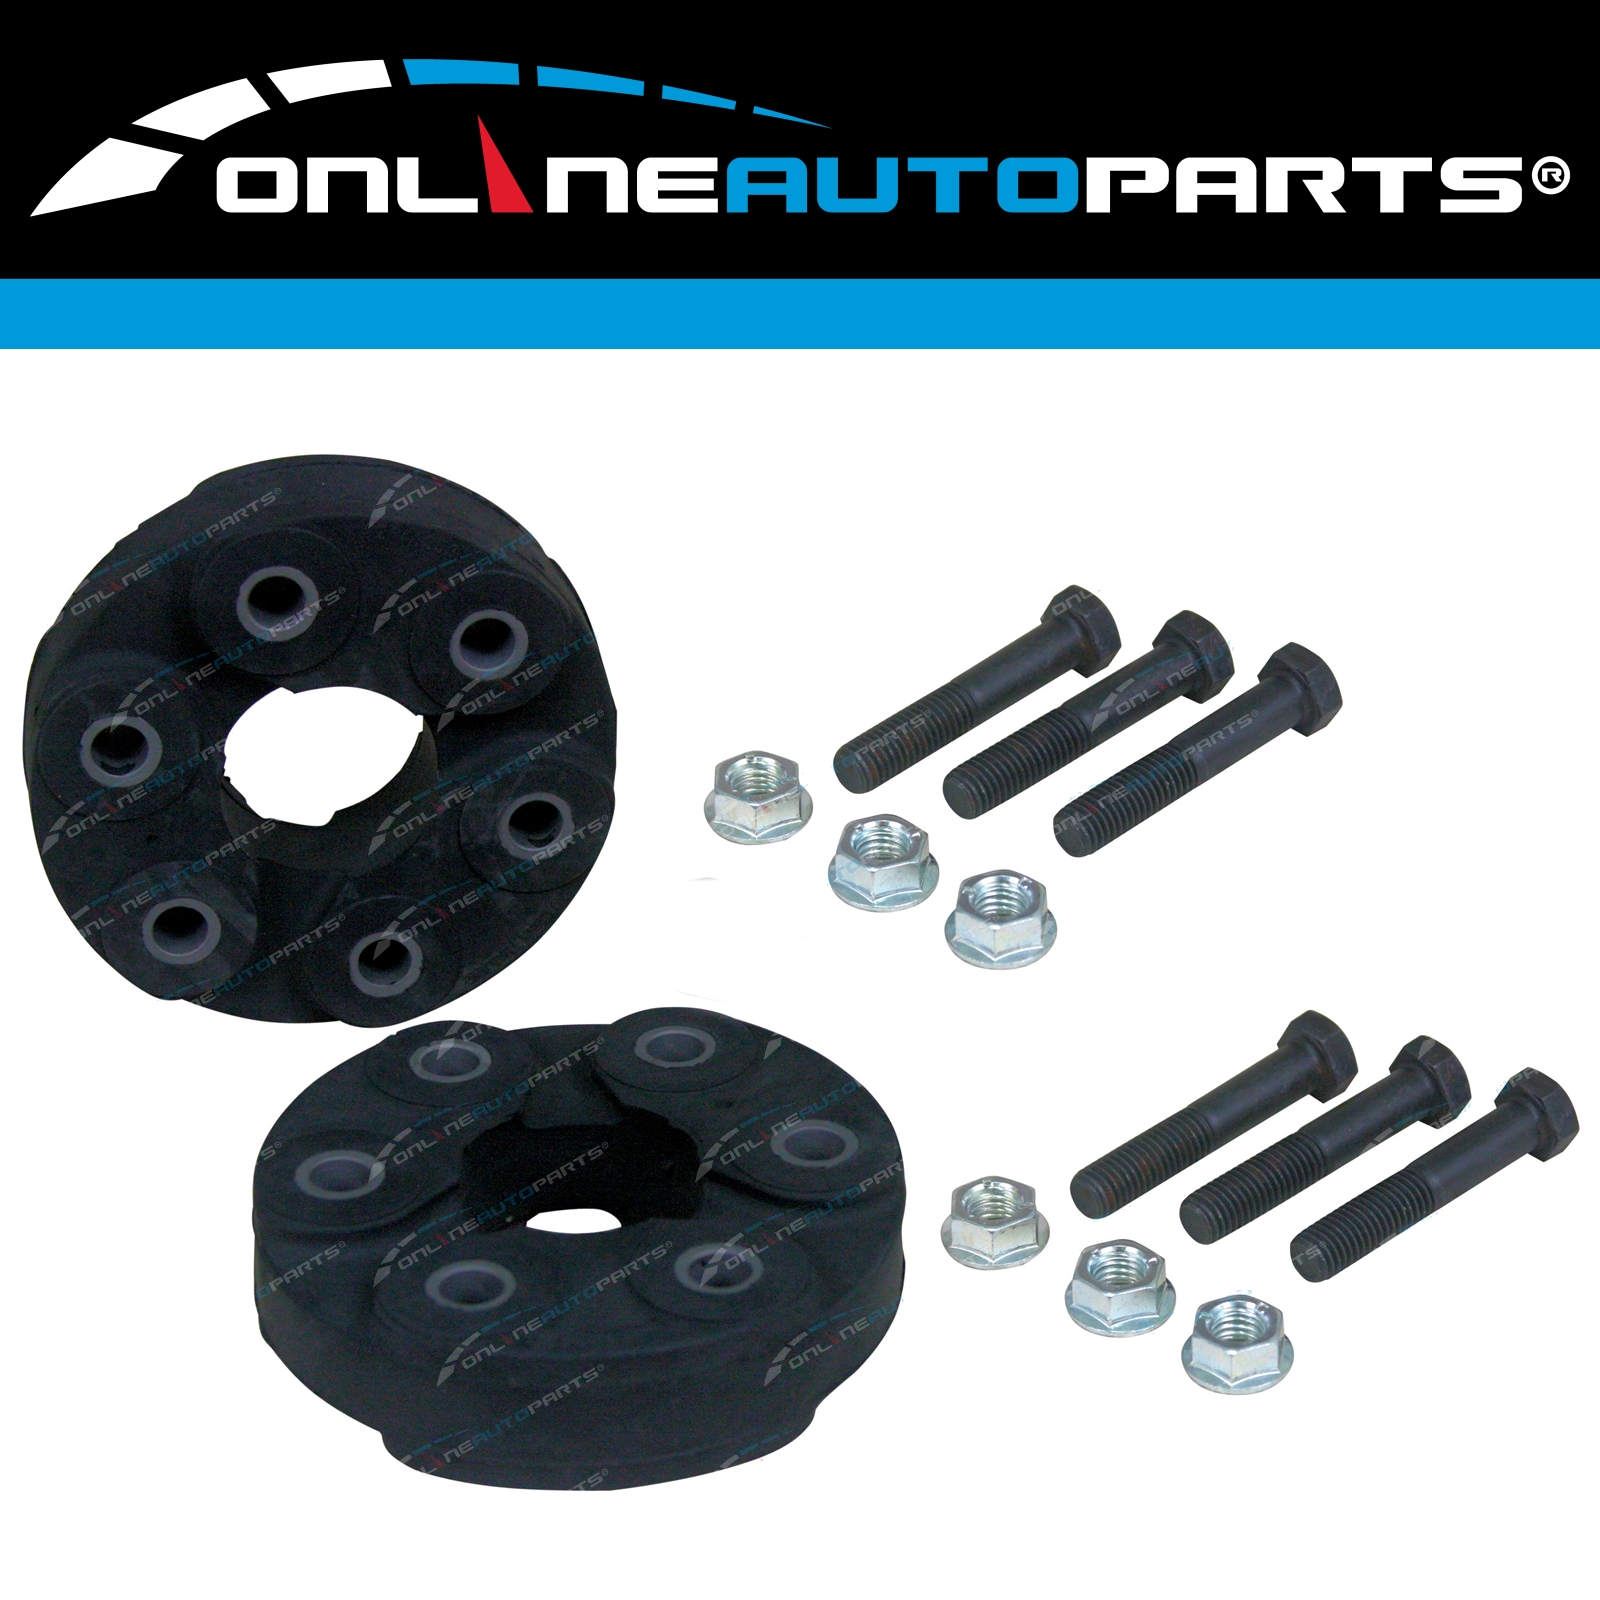 hight resolution of front rear rubber driveshaft tailshaft couplings gm commodore vx vy vz ve v8